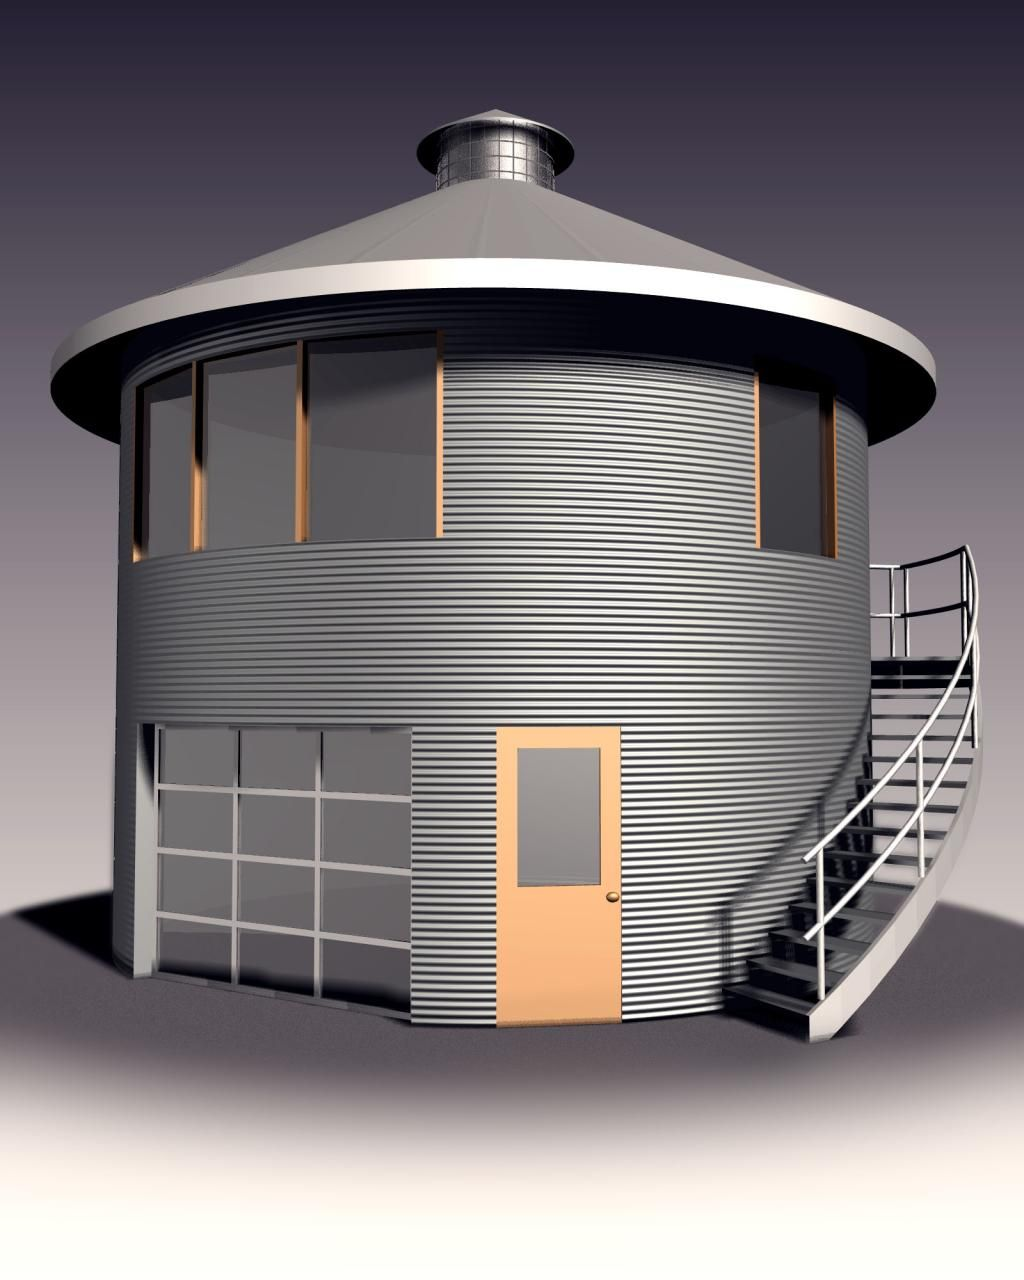 Portfolio Grain Bin Buildings Architecture By